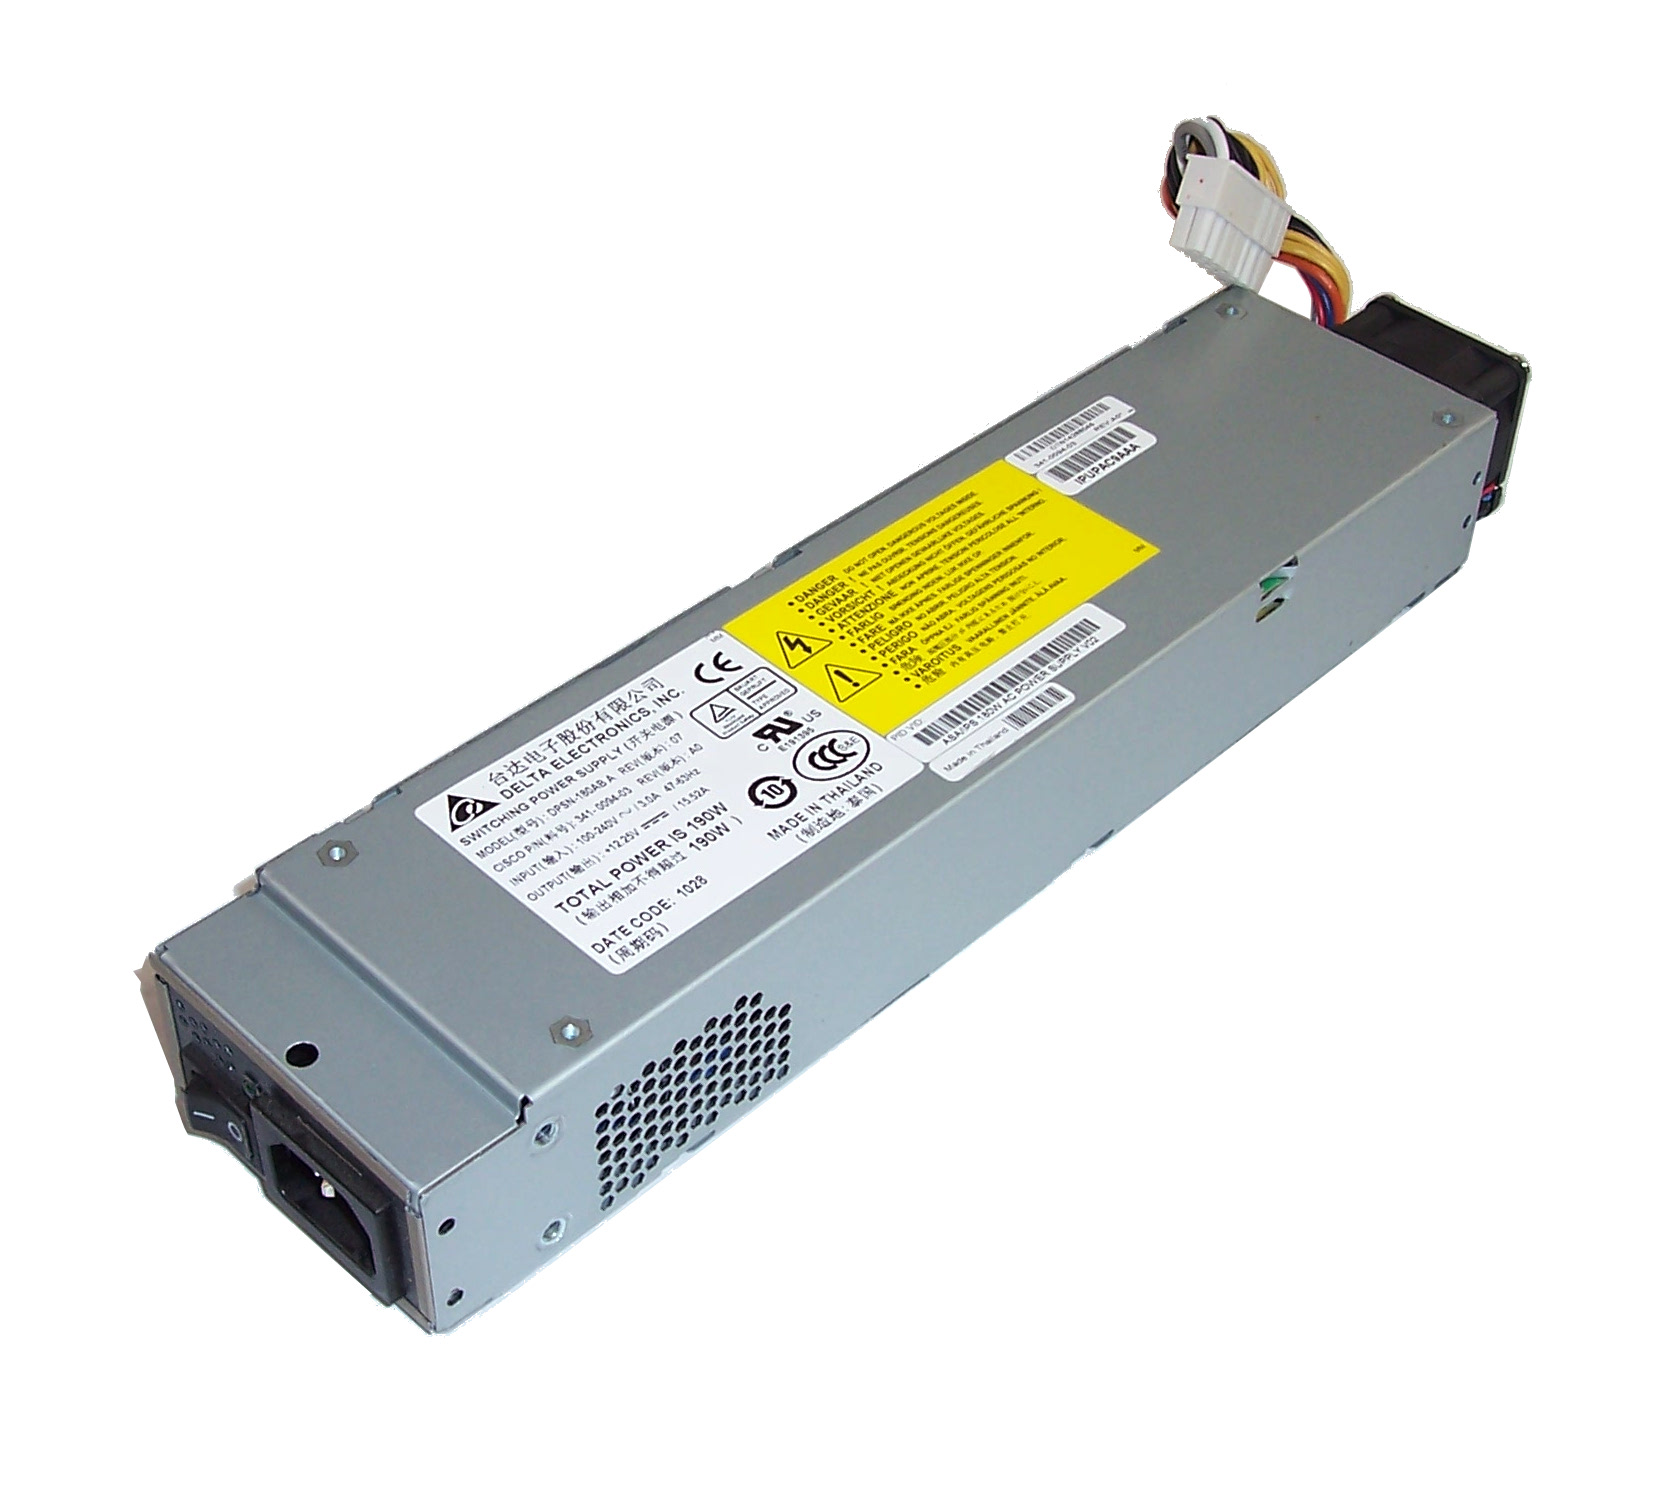 Cisco 341-0094-03 DPSN-180AB A 190W Power Supply For ASA 5510 Security  Appliance